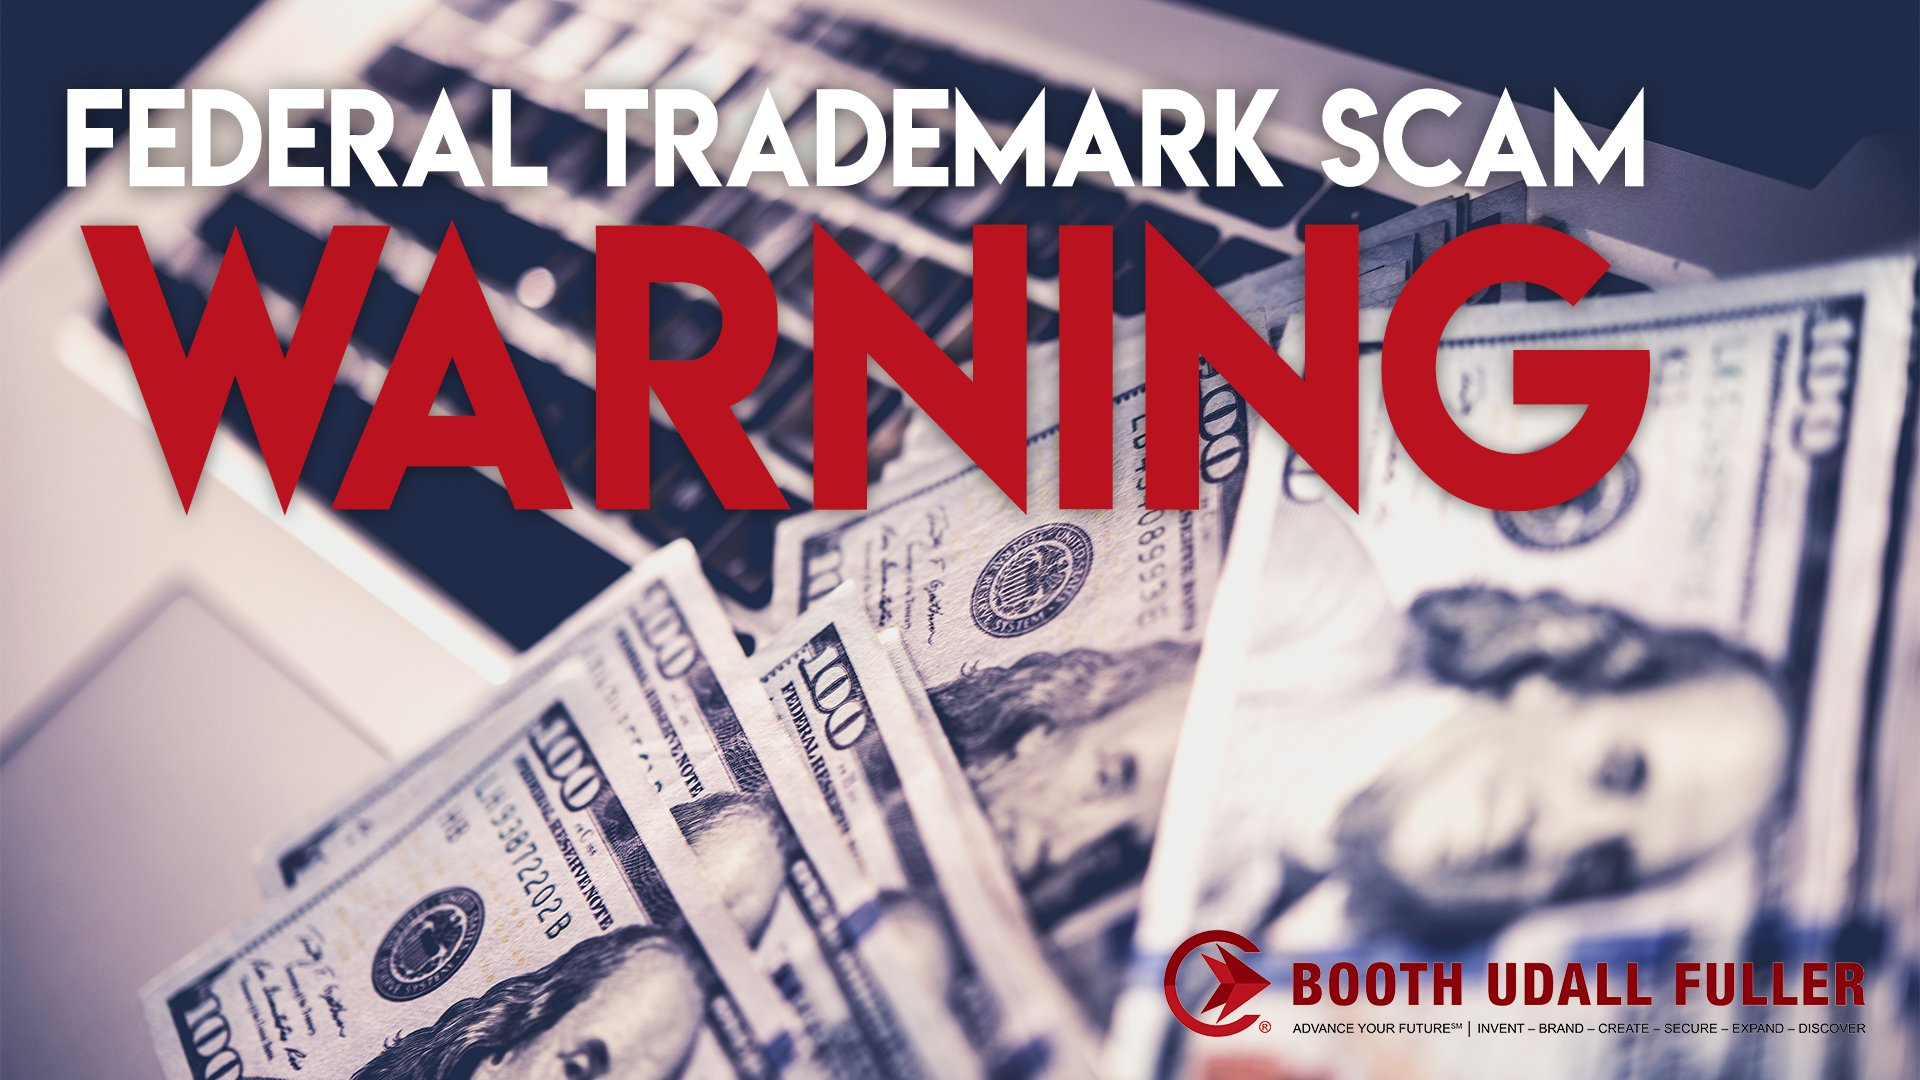 Federal Trademark Scam Warning